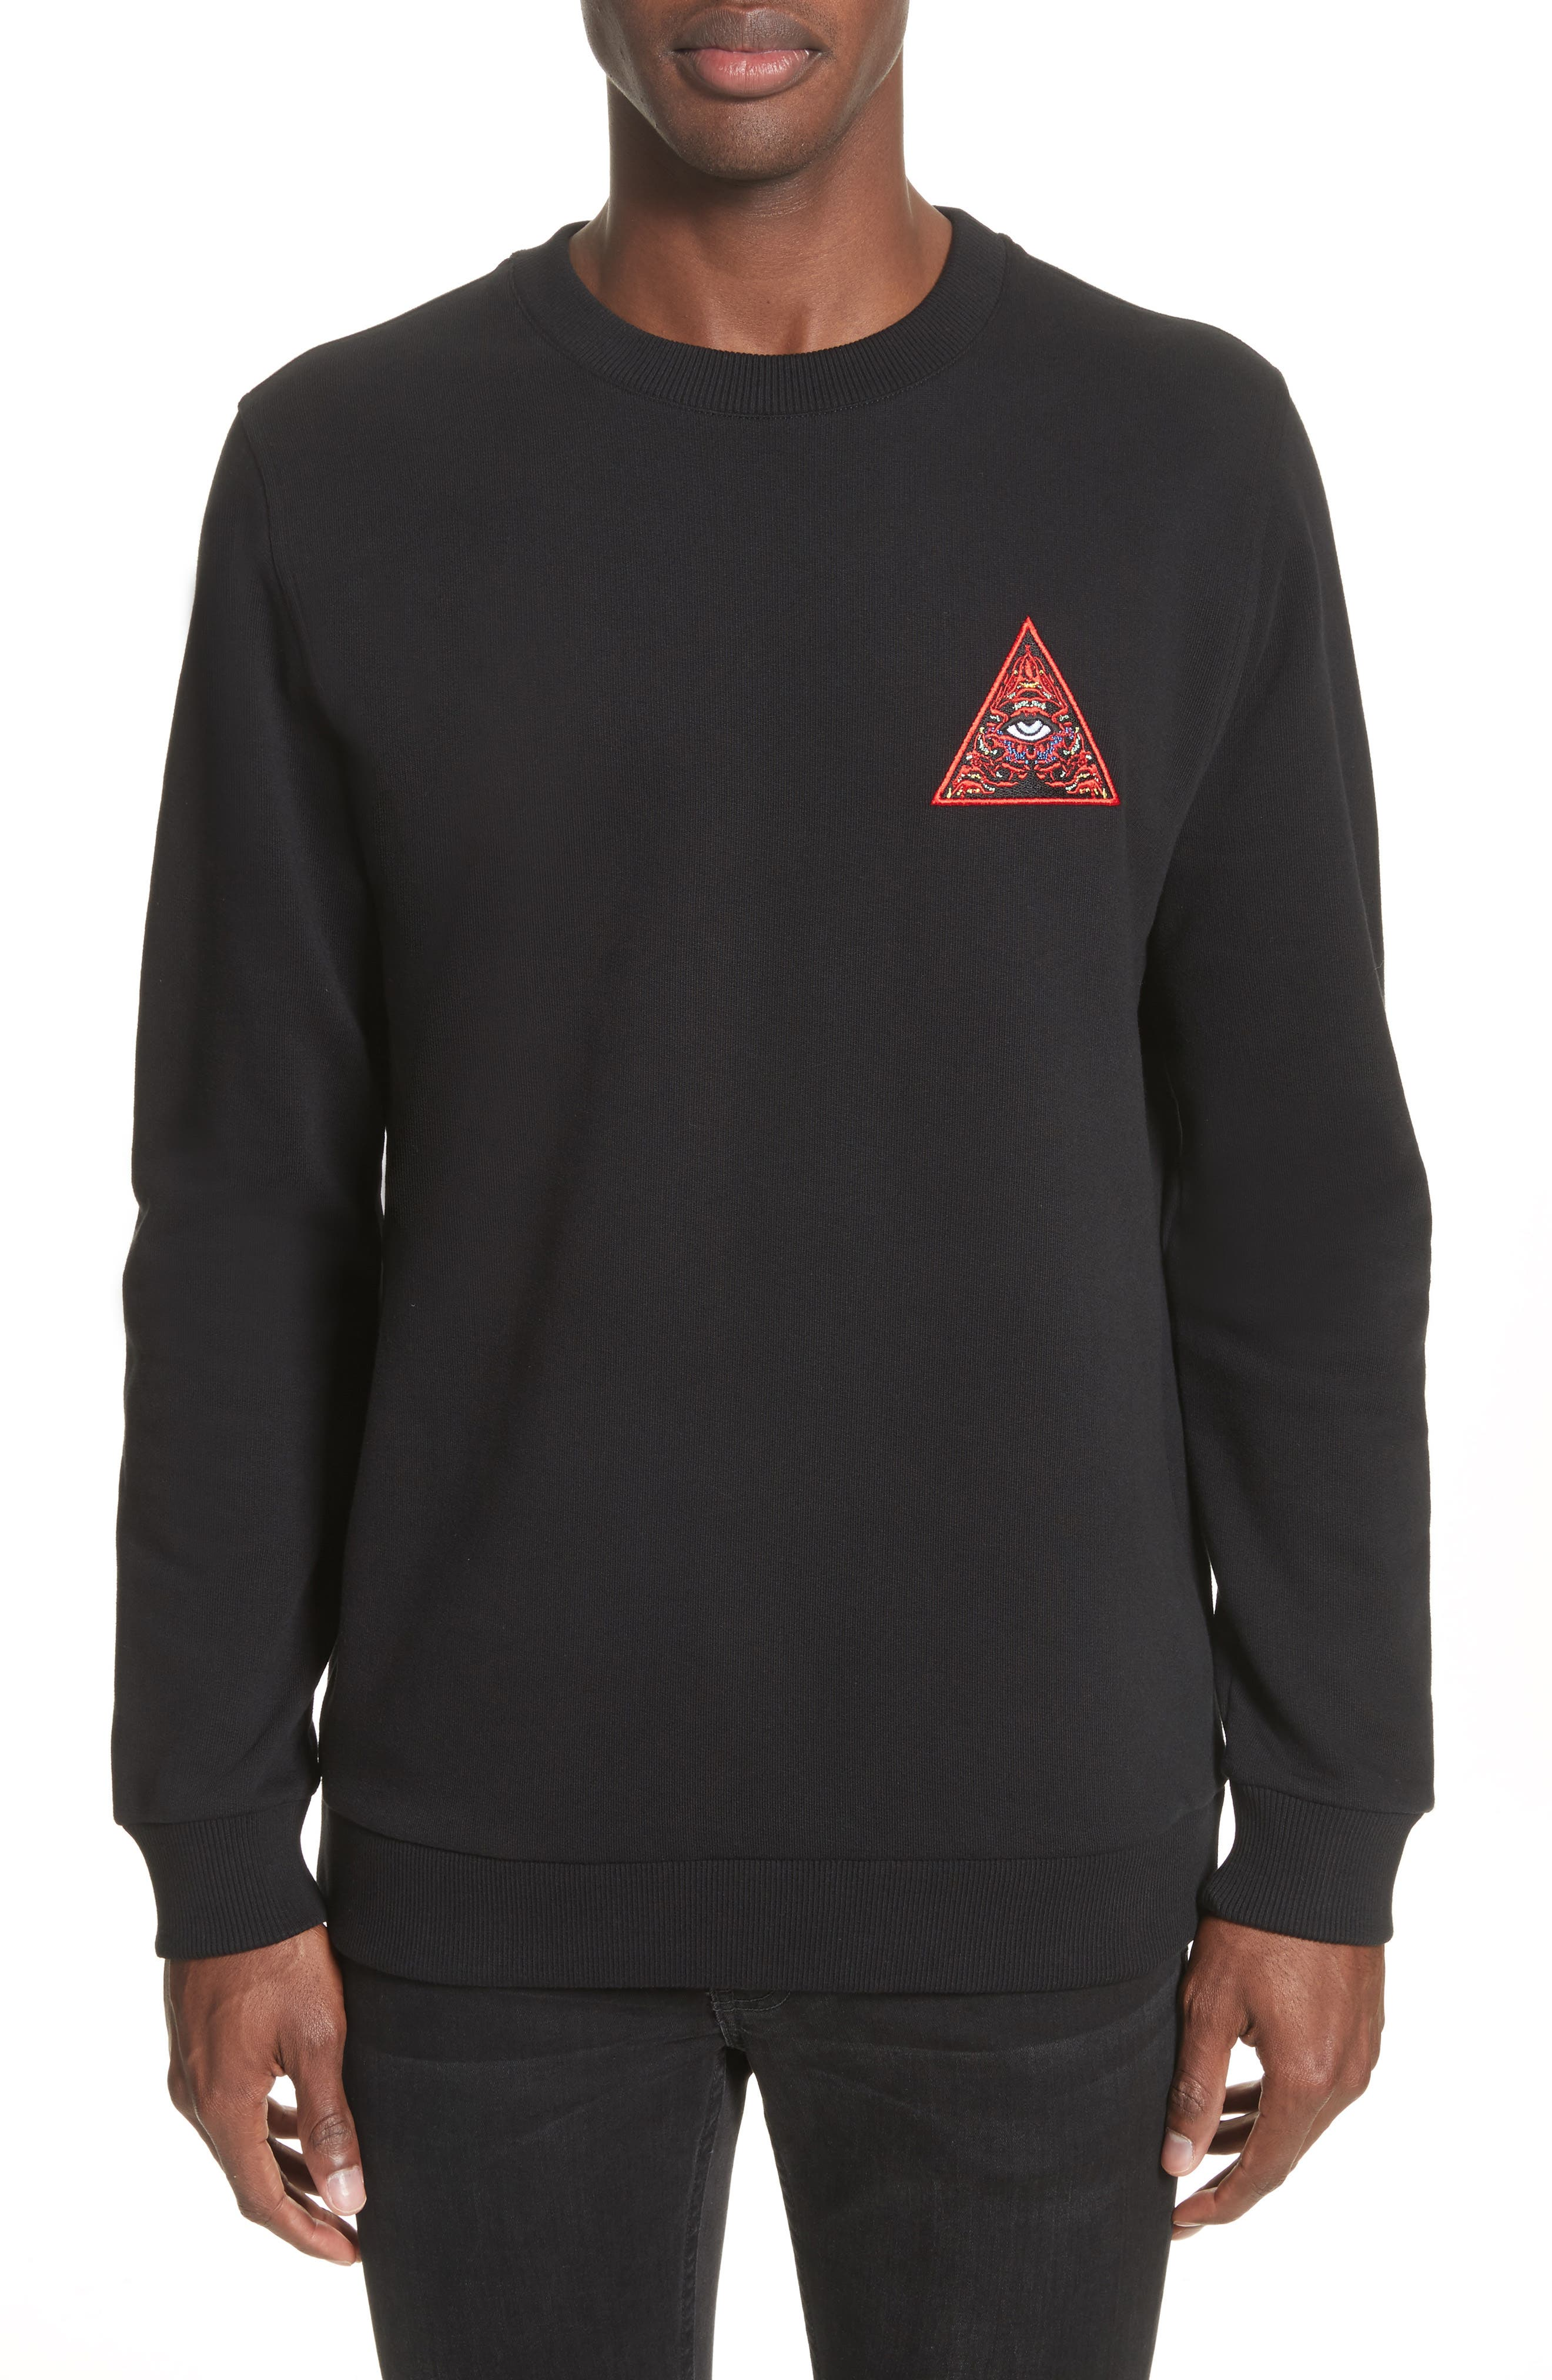 Givenchy Cuban Fit Realize Sweatshirt